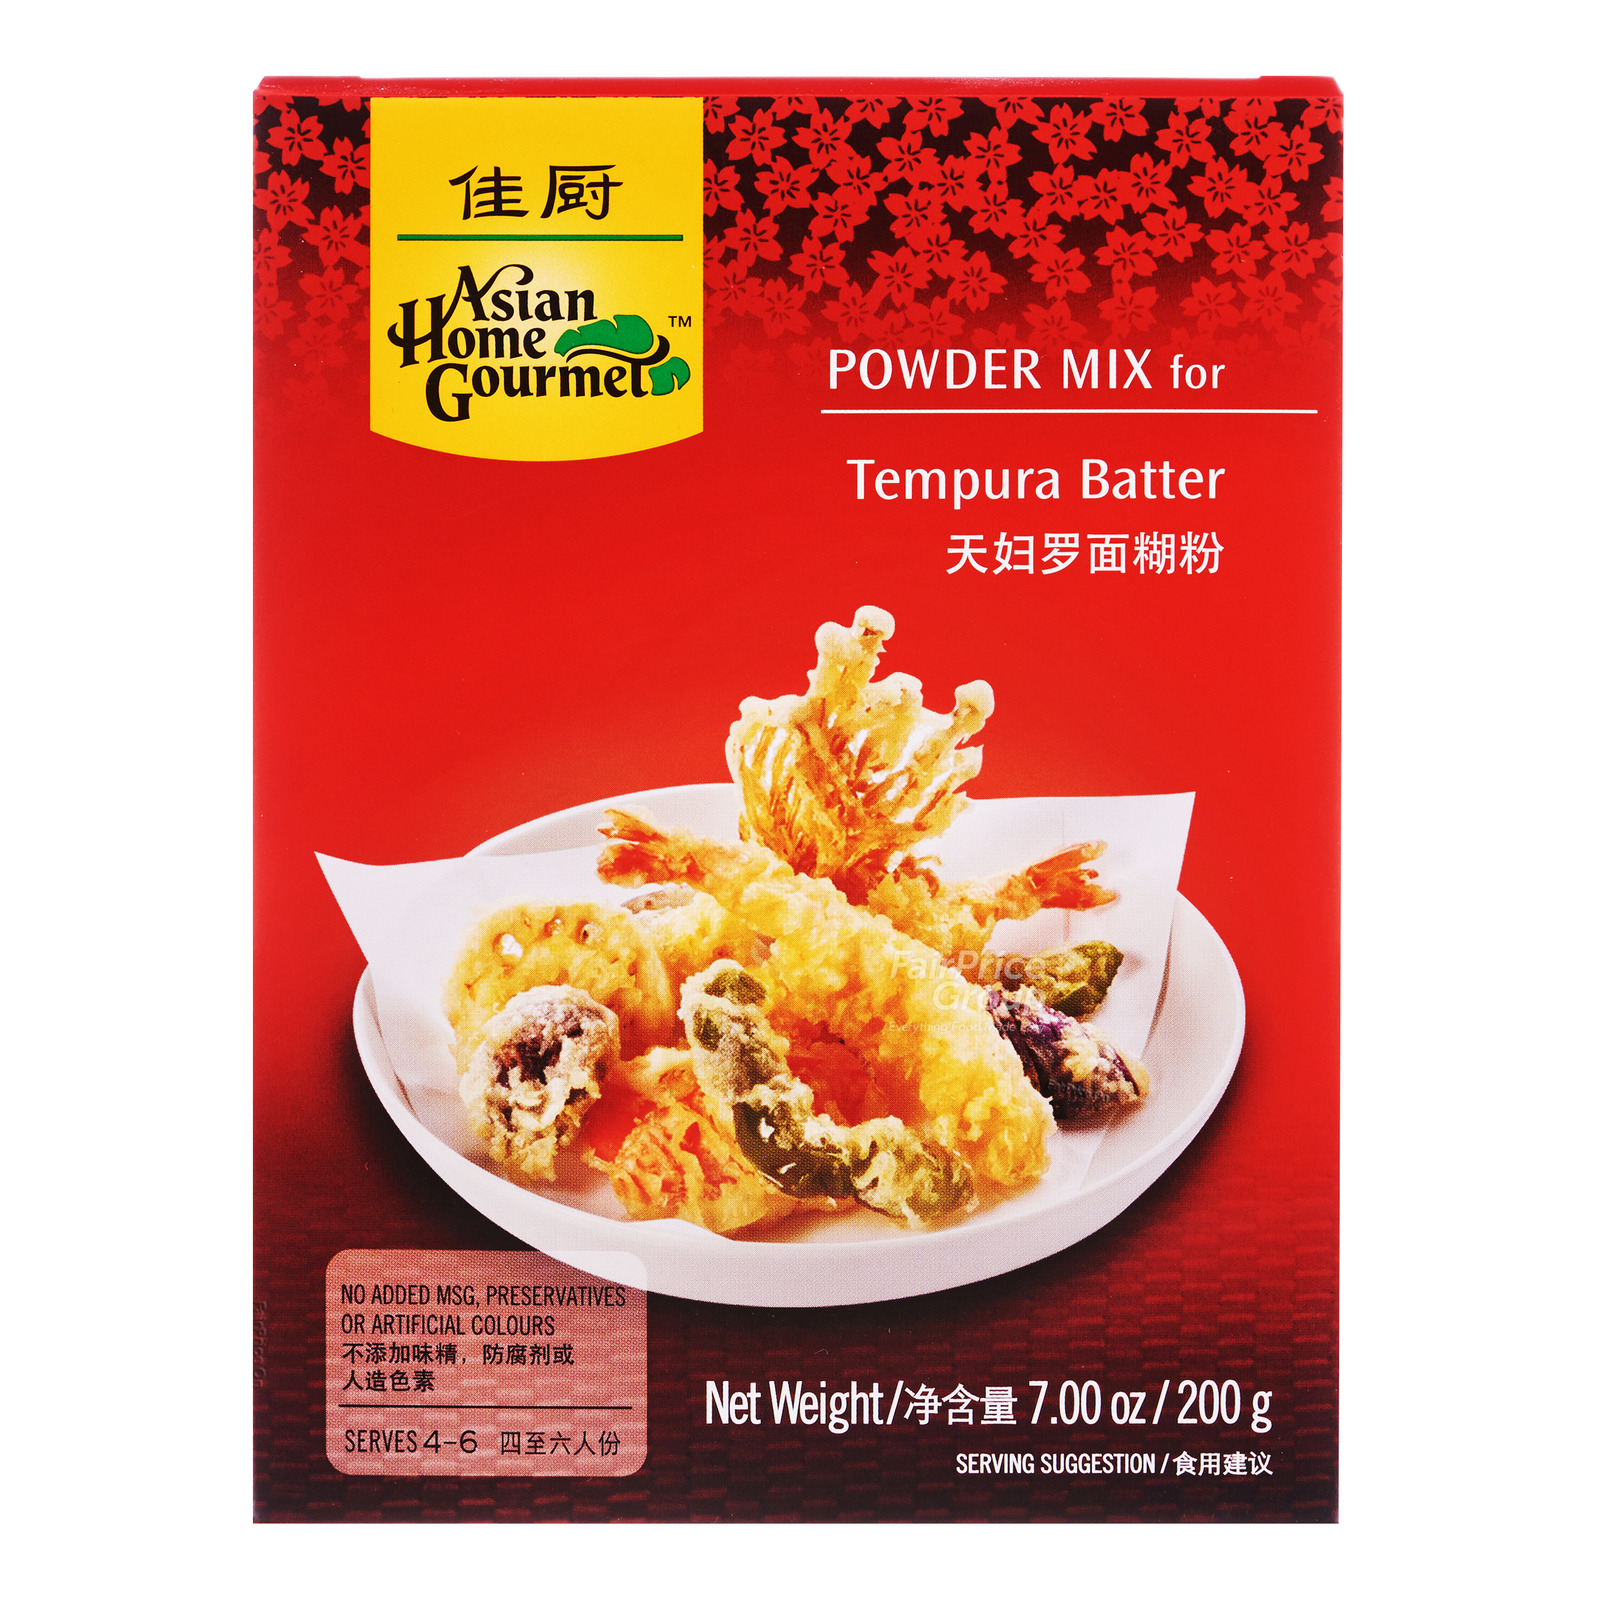 Asian Home Gourmet Powder Mix - Tempura Batter